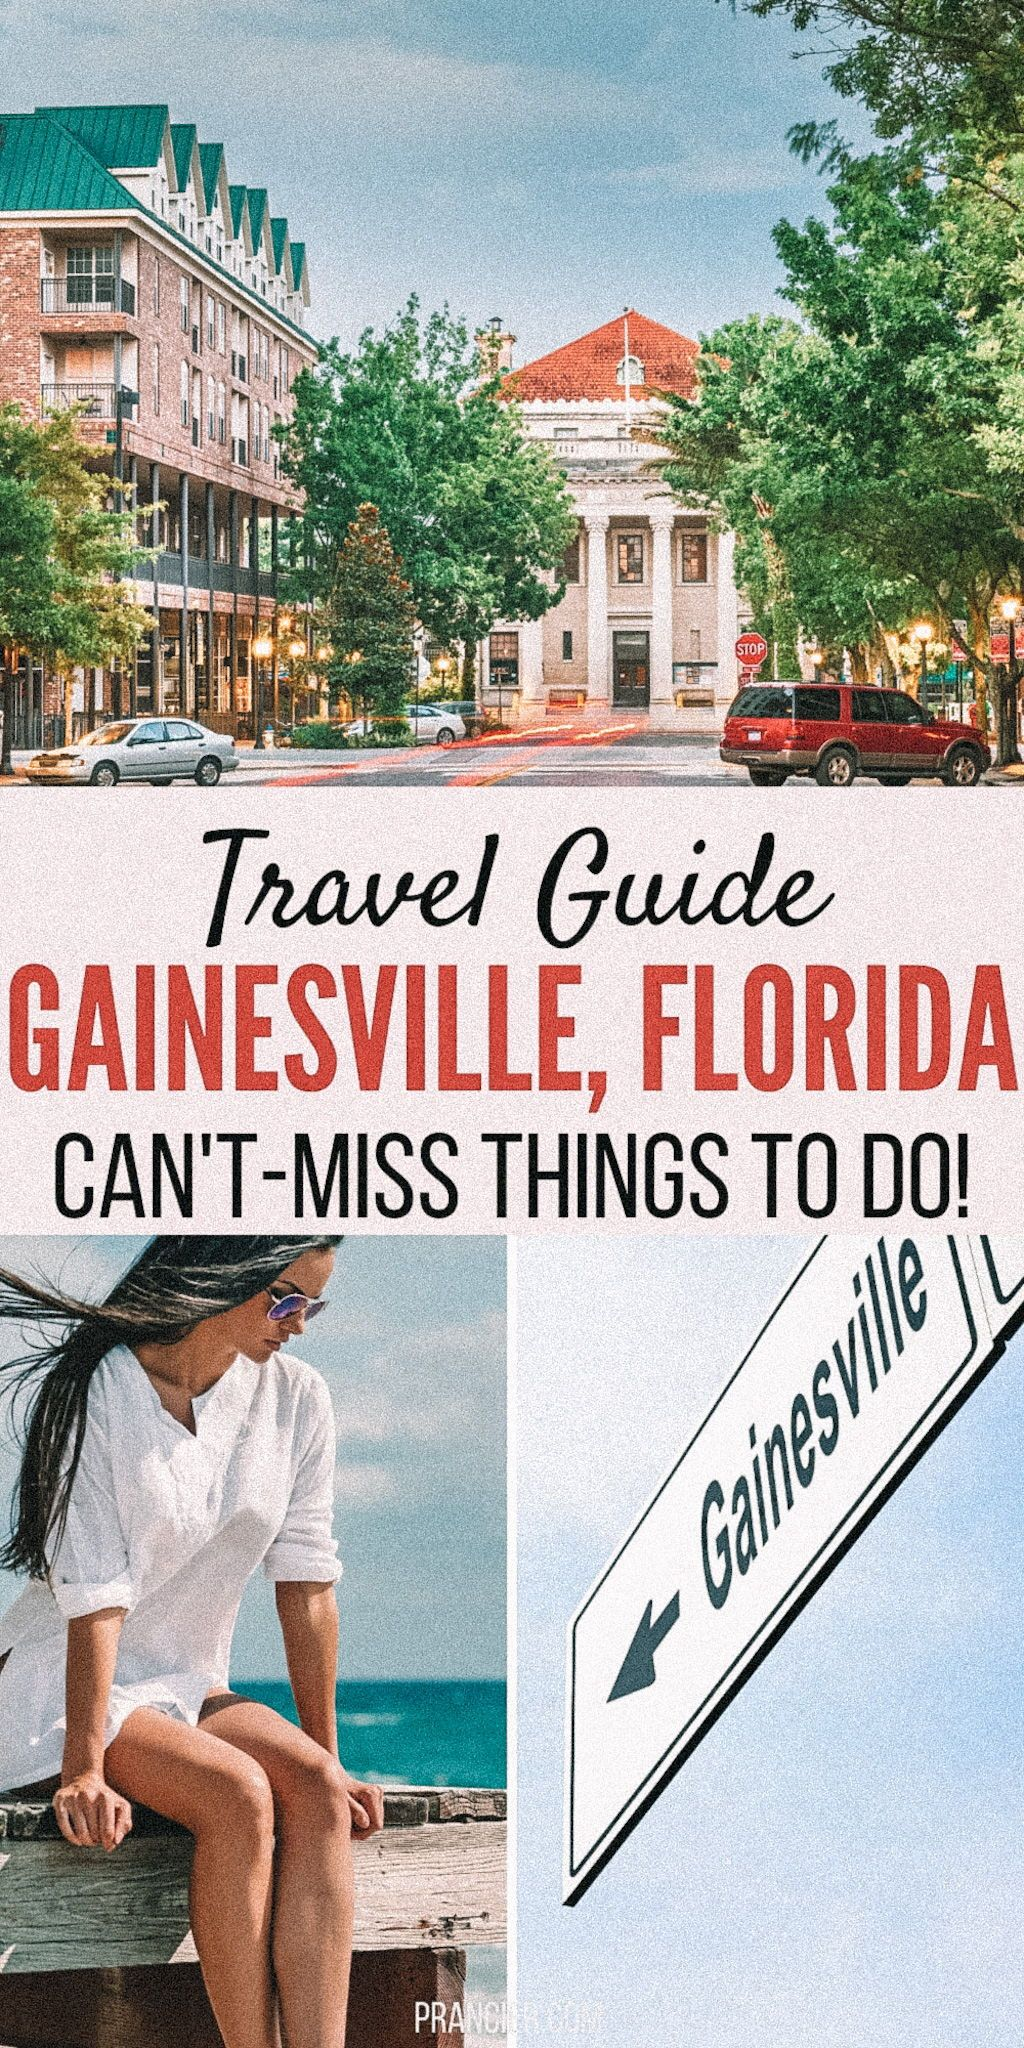 Things To Do In Gainesville Prancier Florida Travel Guide Florida Travel South America Travel Destinations